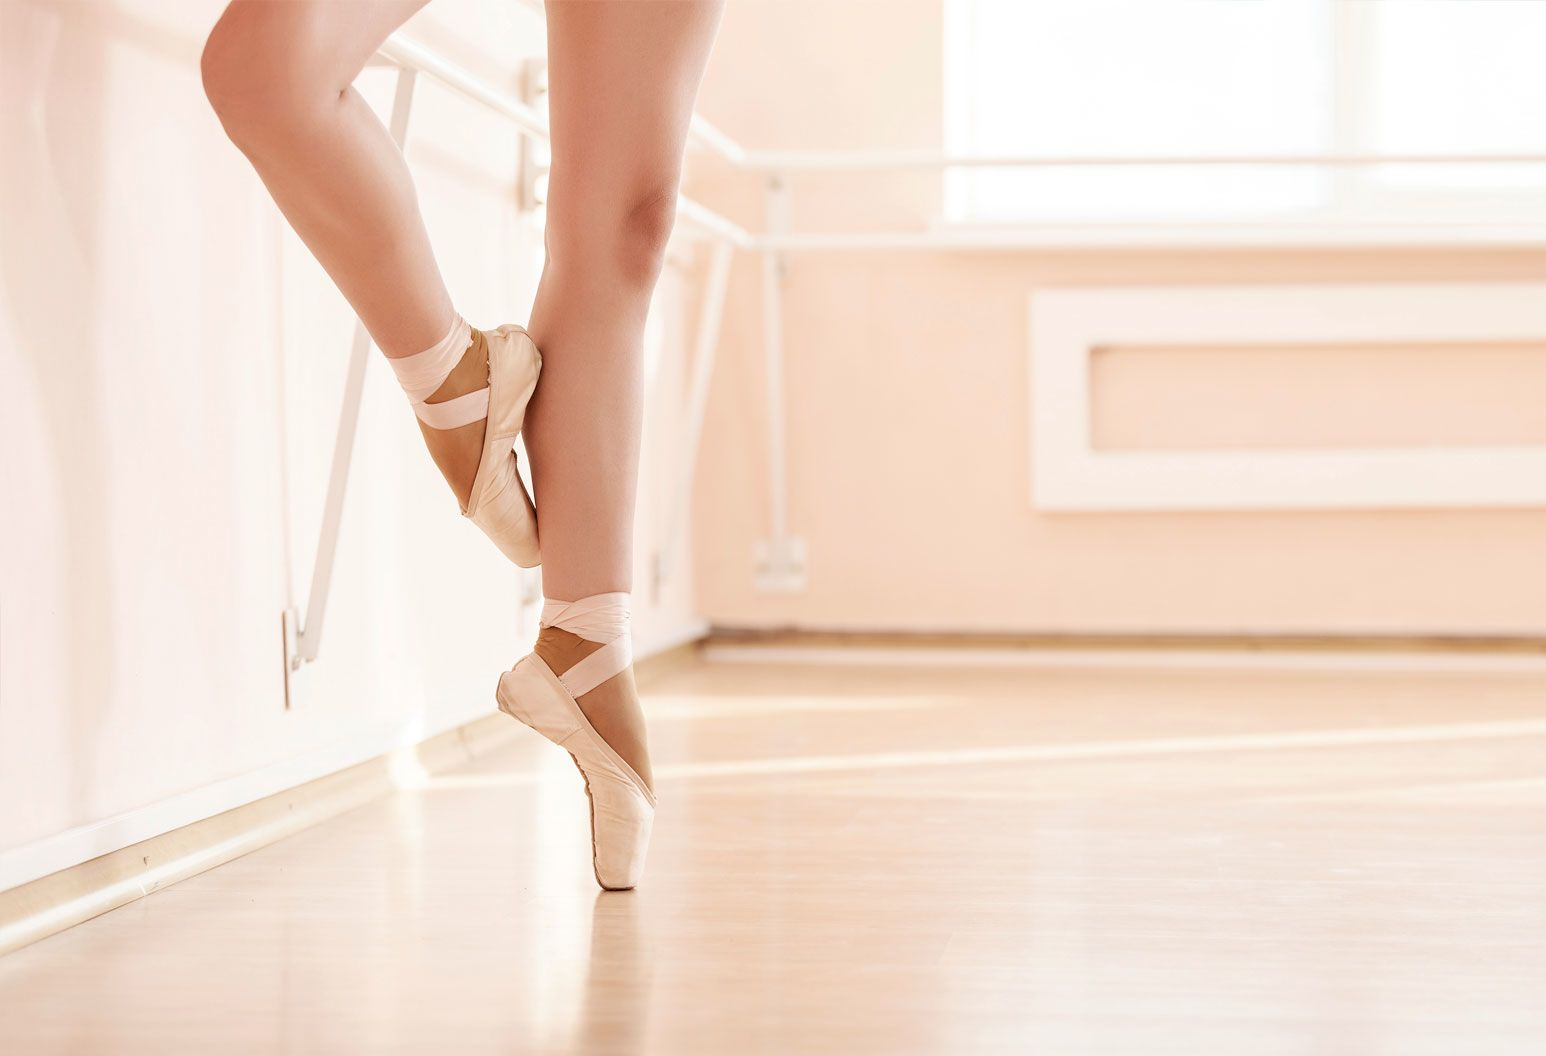 A ballerina with bare legs is wearing pink satin pointe shoes and standing on one leg, on her toes. The other leg is pointed on her calf. She's in an empty dance studio with wood floors and a white barre.